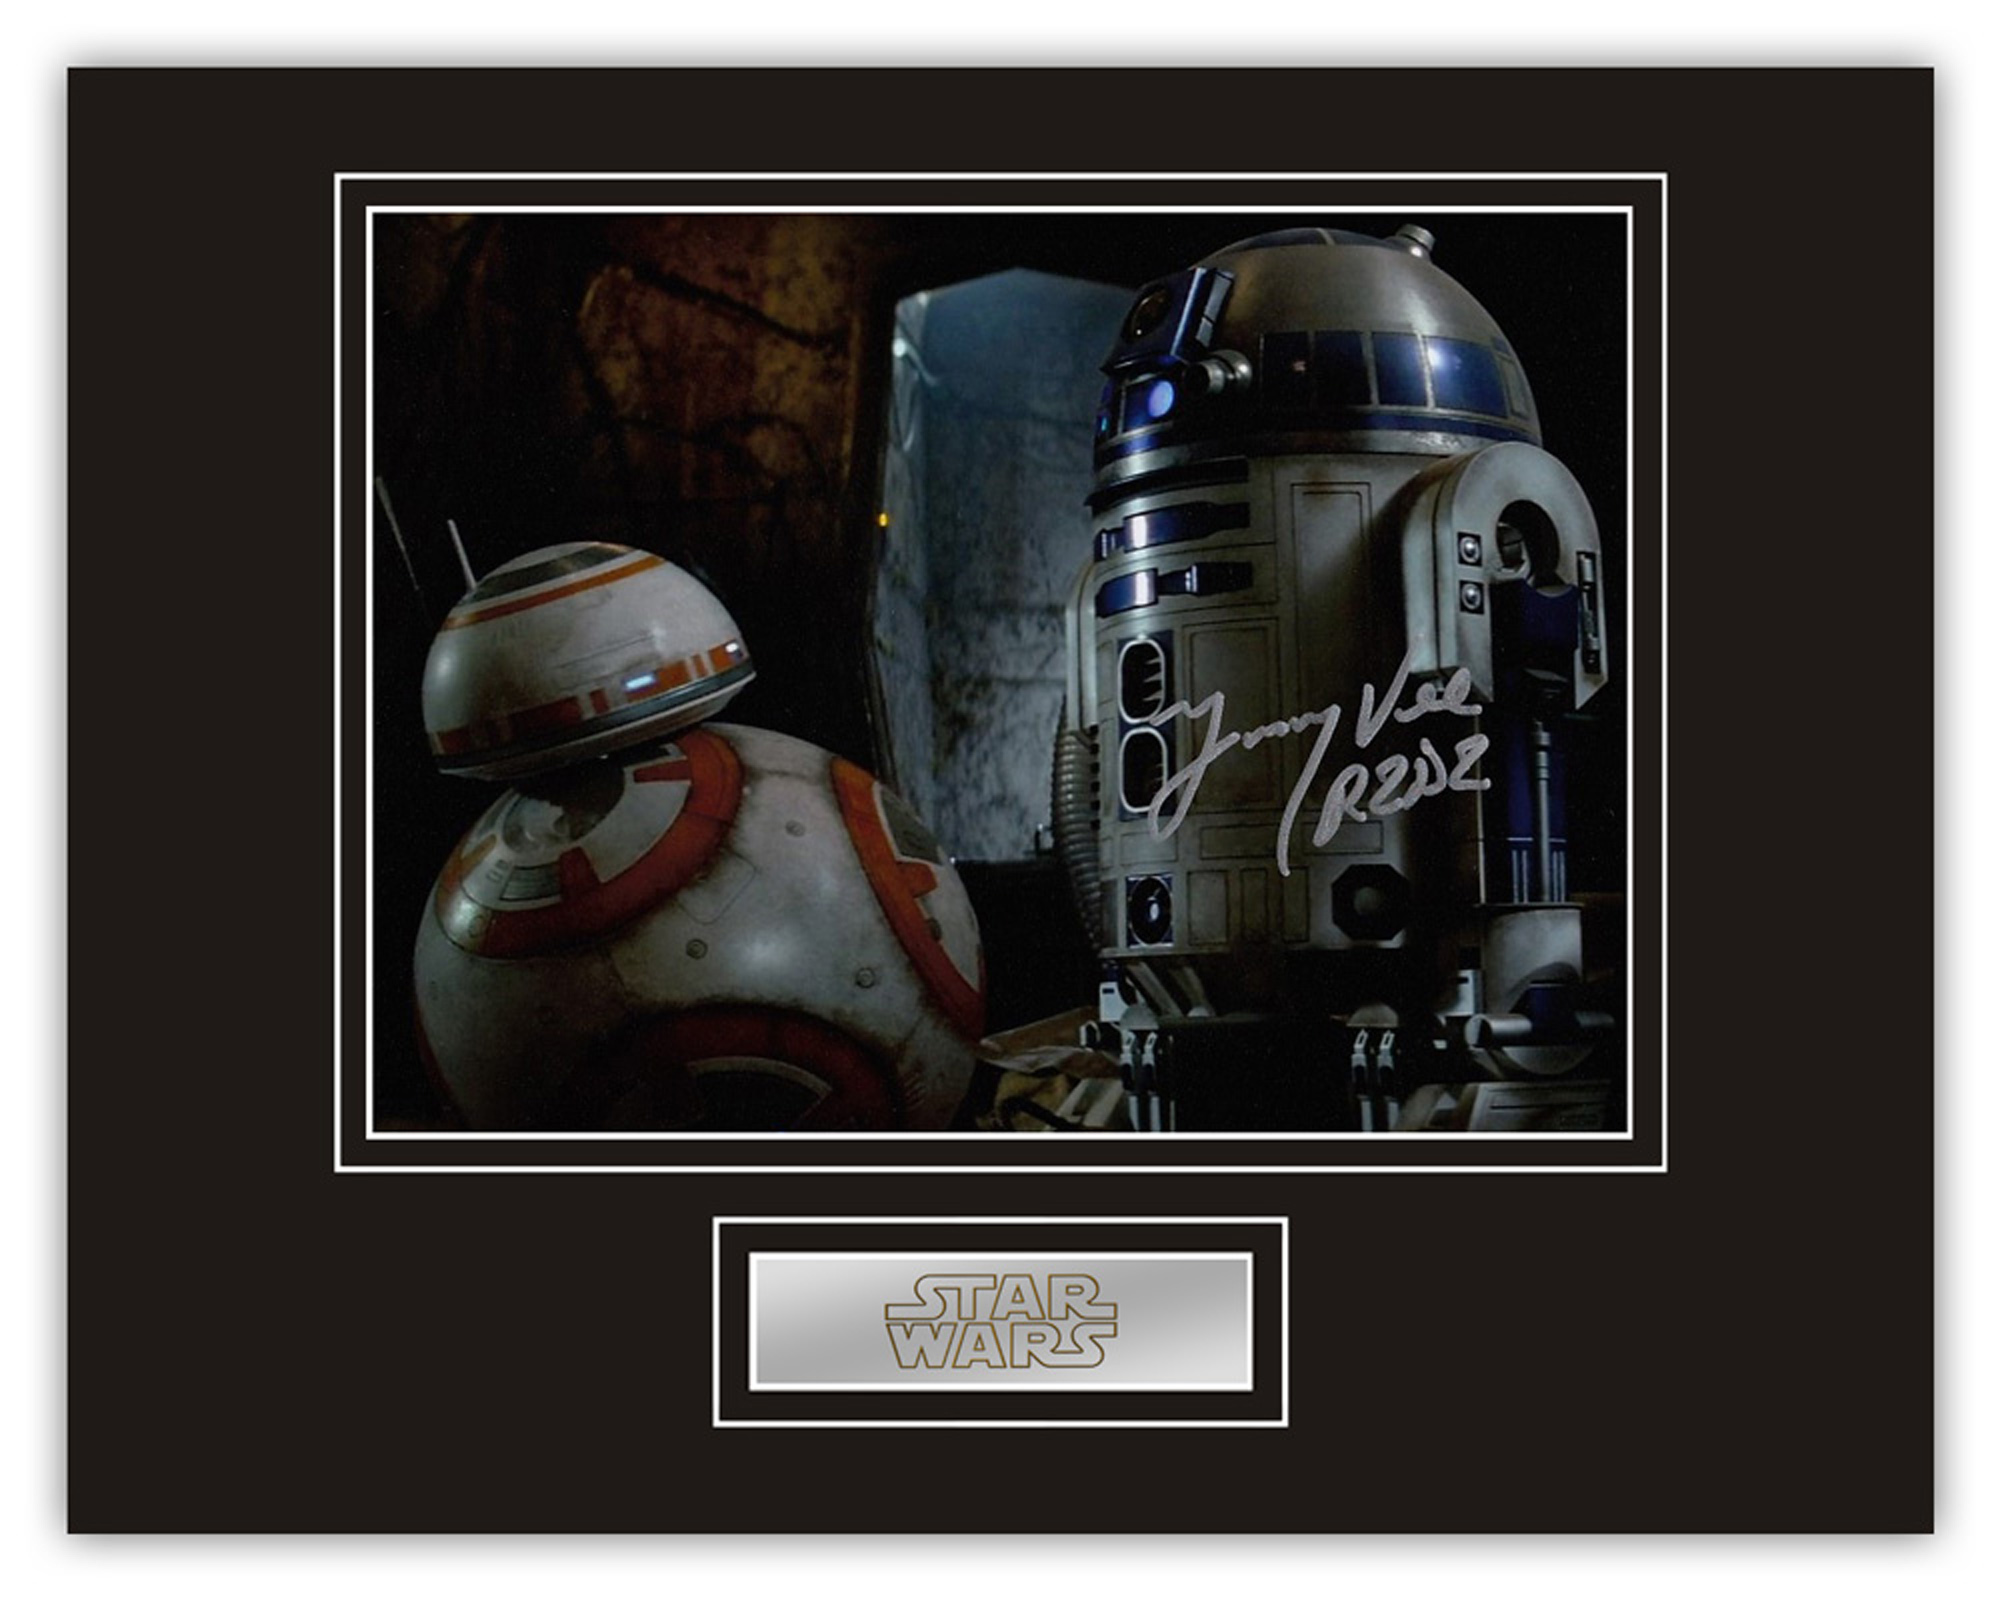 Stunning Display! Star Wars Jimmy Vee hand signed professionally mounted display. This beautiful